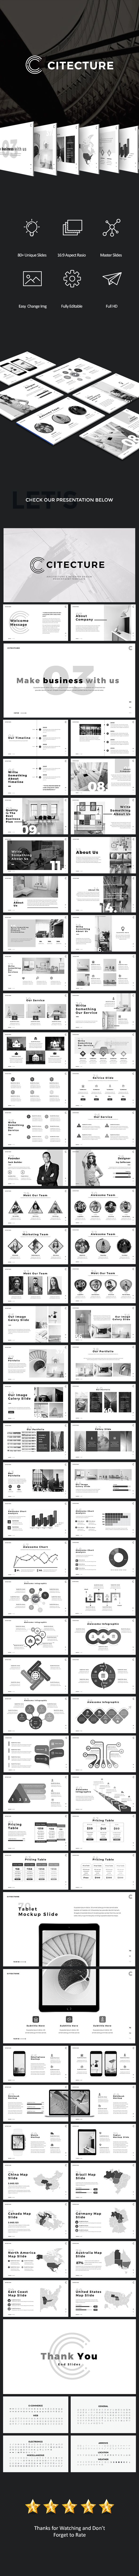 Citecture Google Slides   Presentation templates, Template and ...